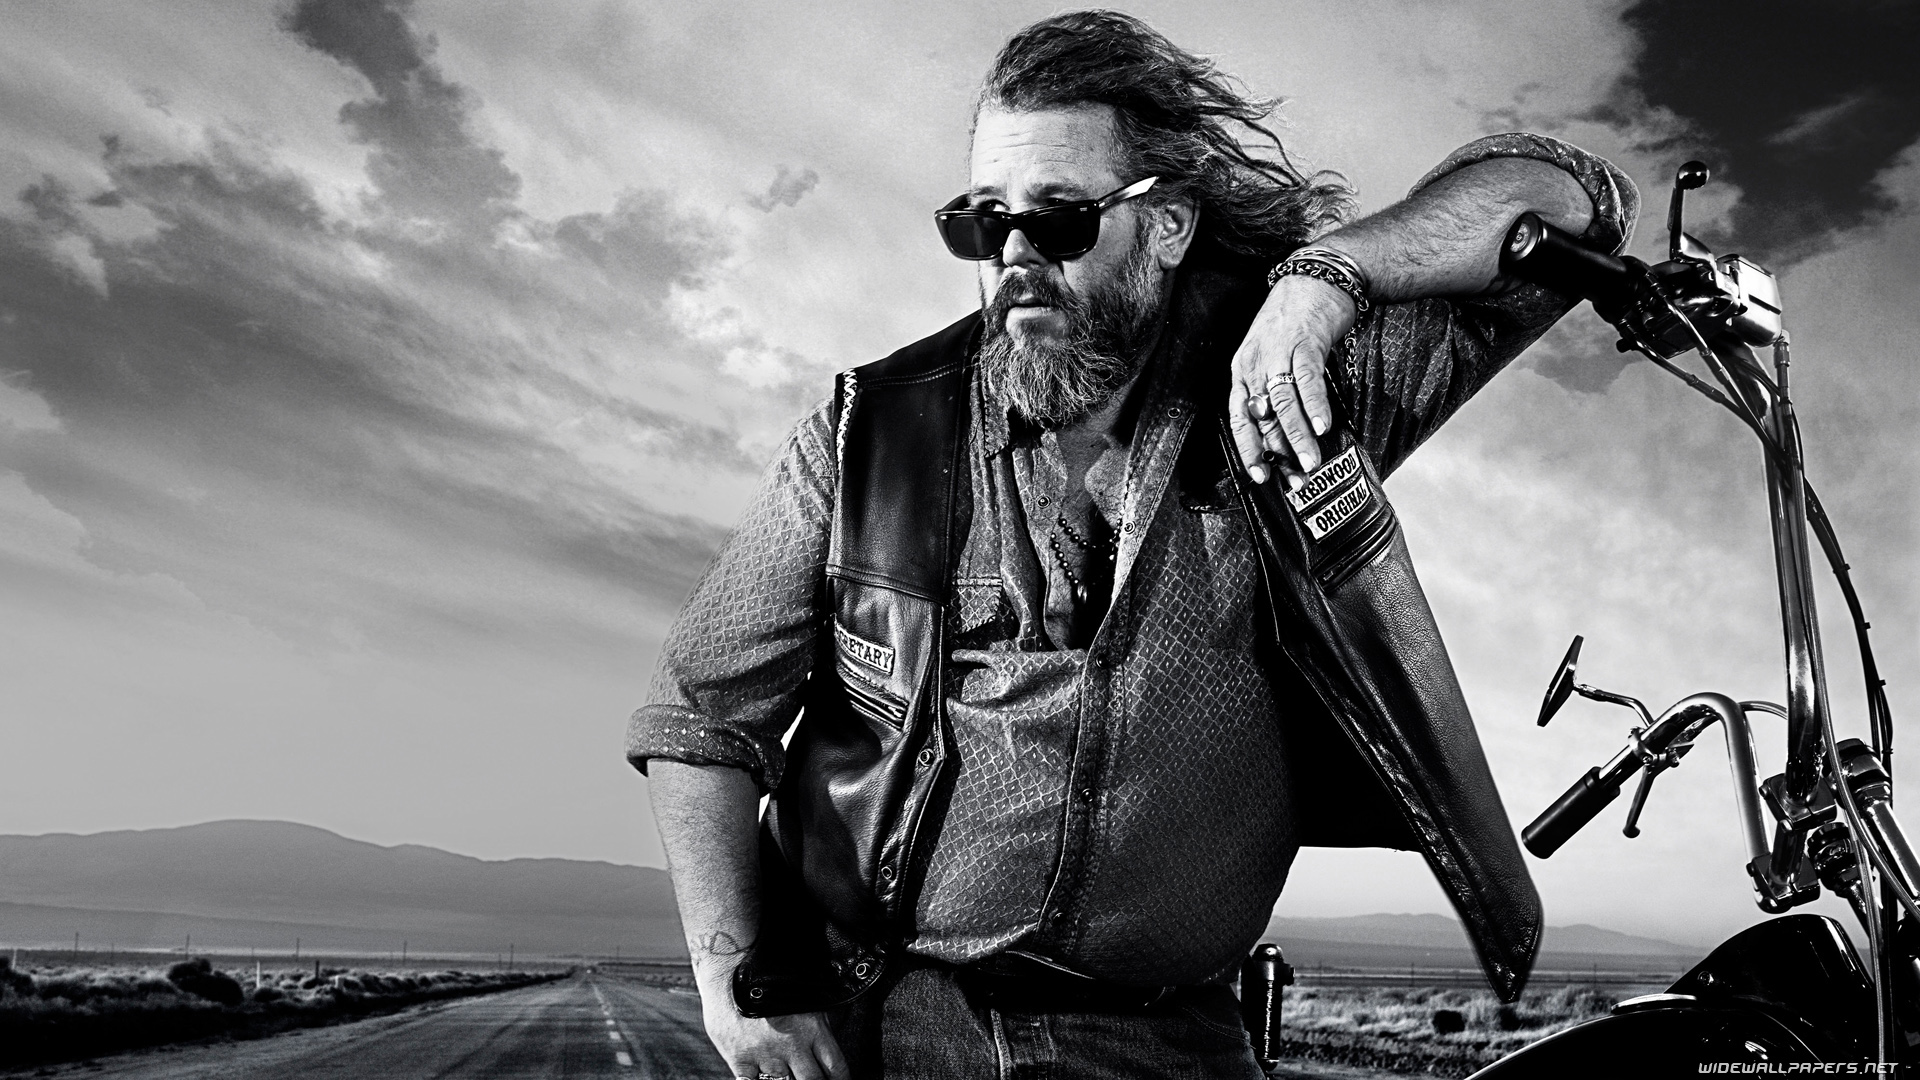 Sons of anarchy full hd wallpaper and background image 1920x1080 tv show sons of anarchy sons of anarchy wallpaper voltagebd Choice Image